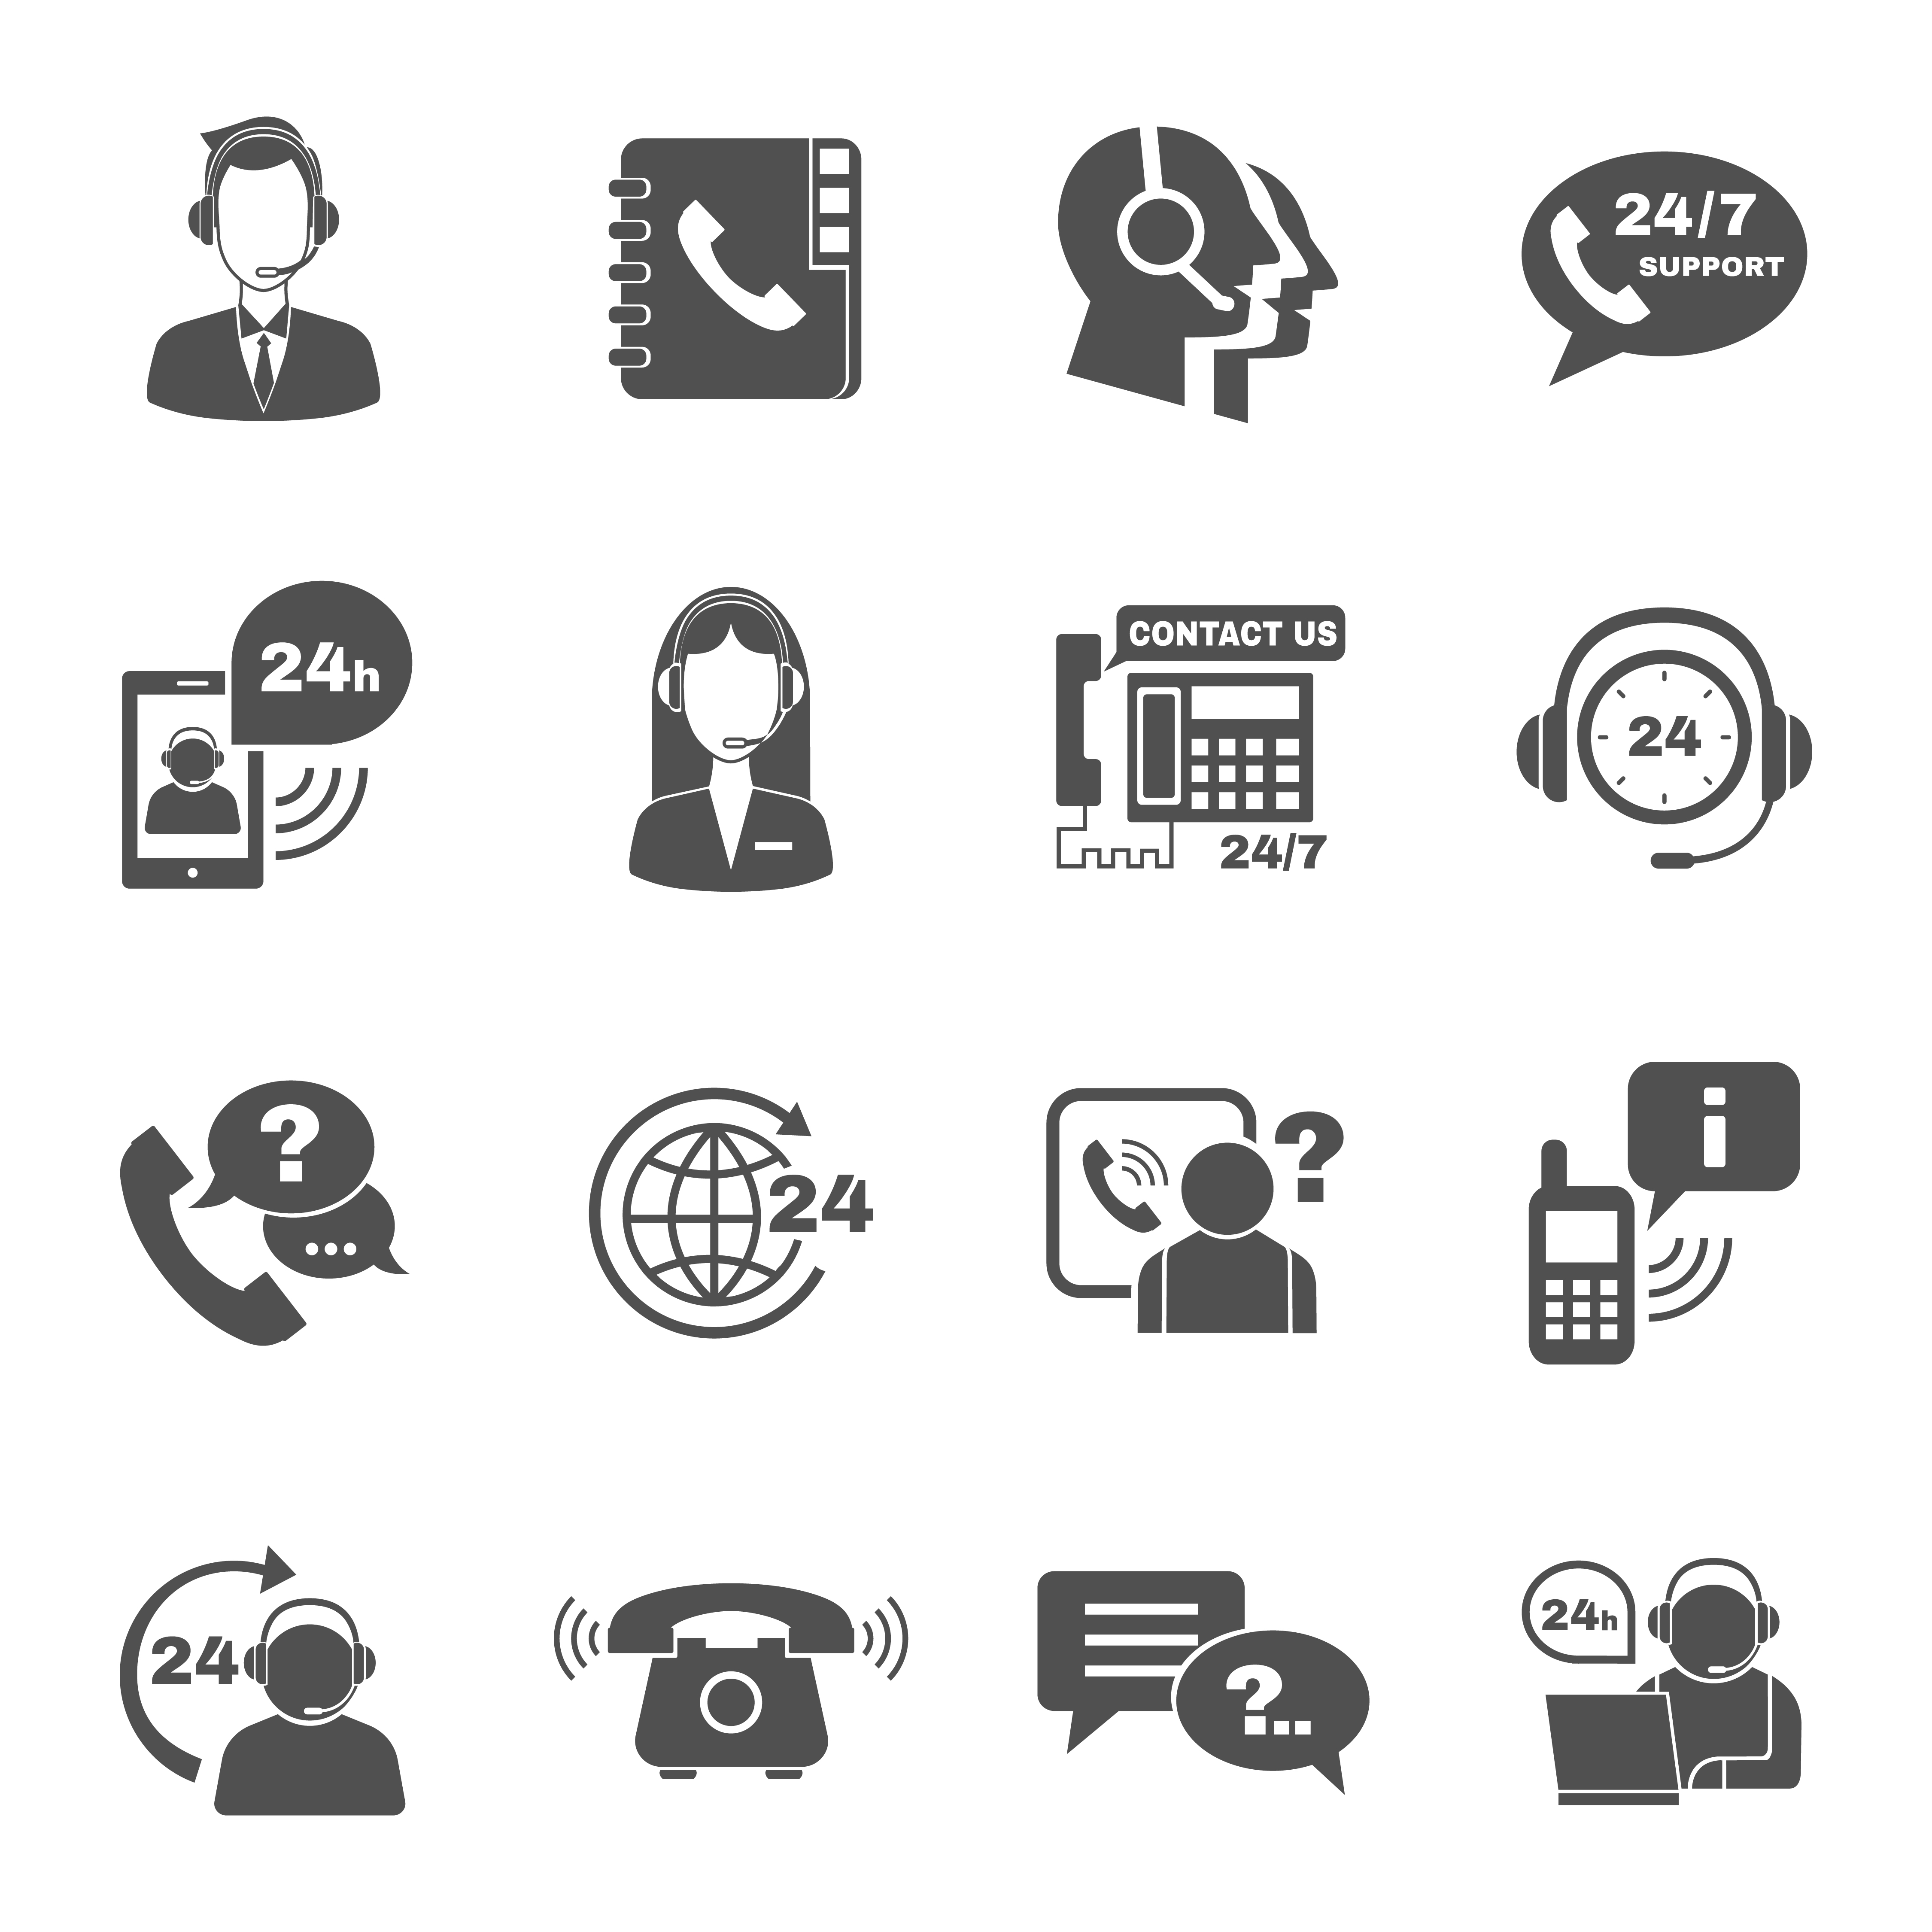 Support Contact Call Center Icons Set